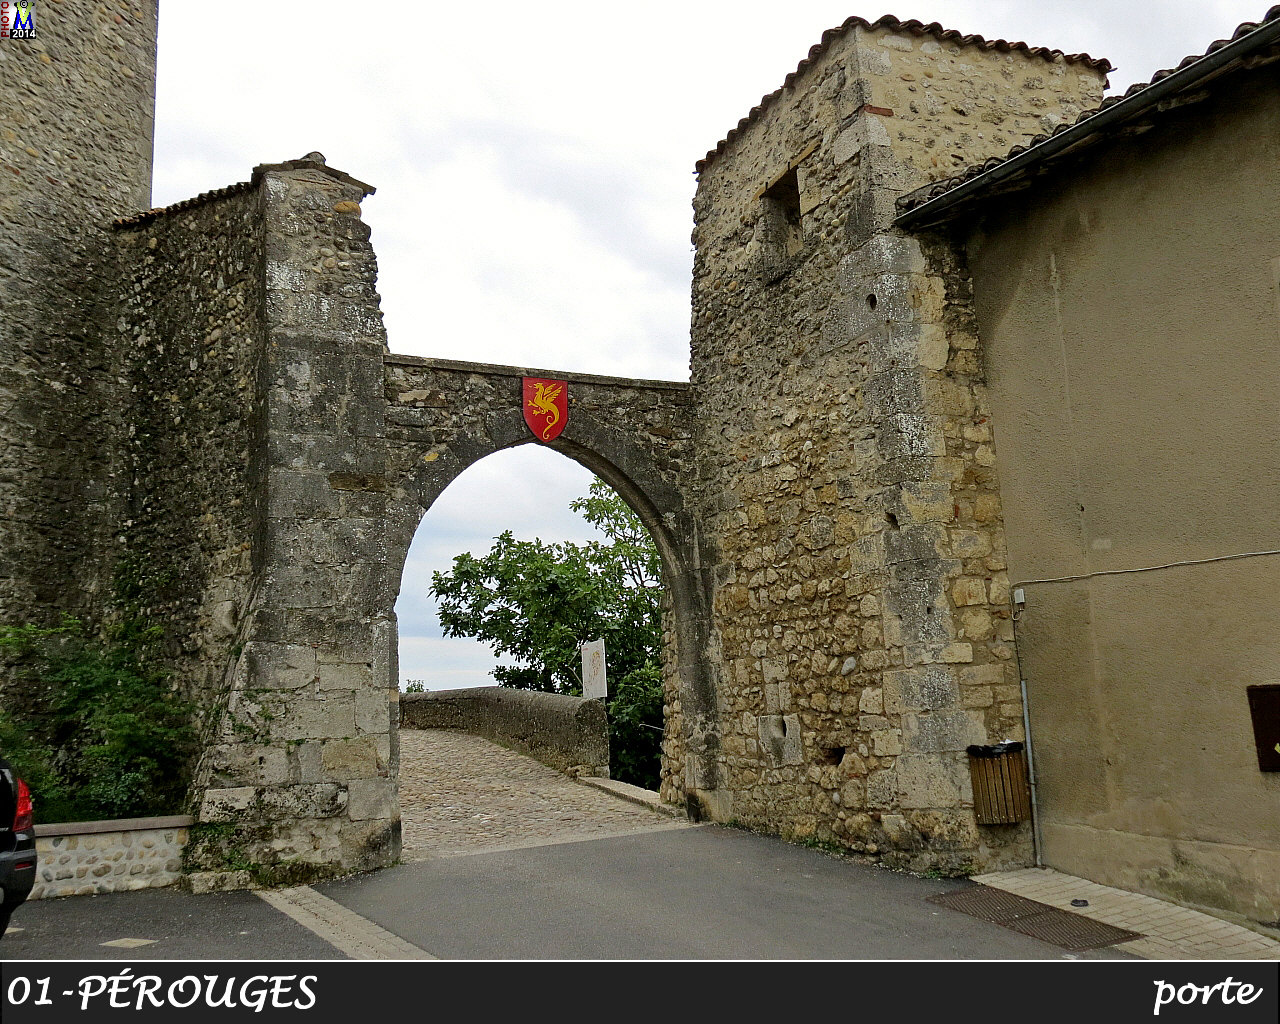 01PEROUGES_porte_102.jpg